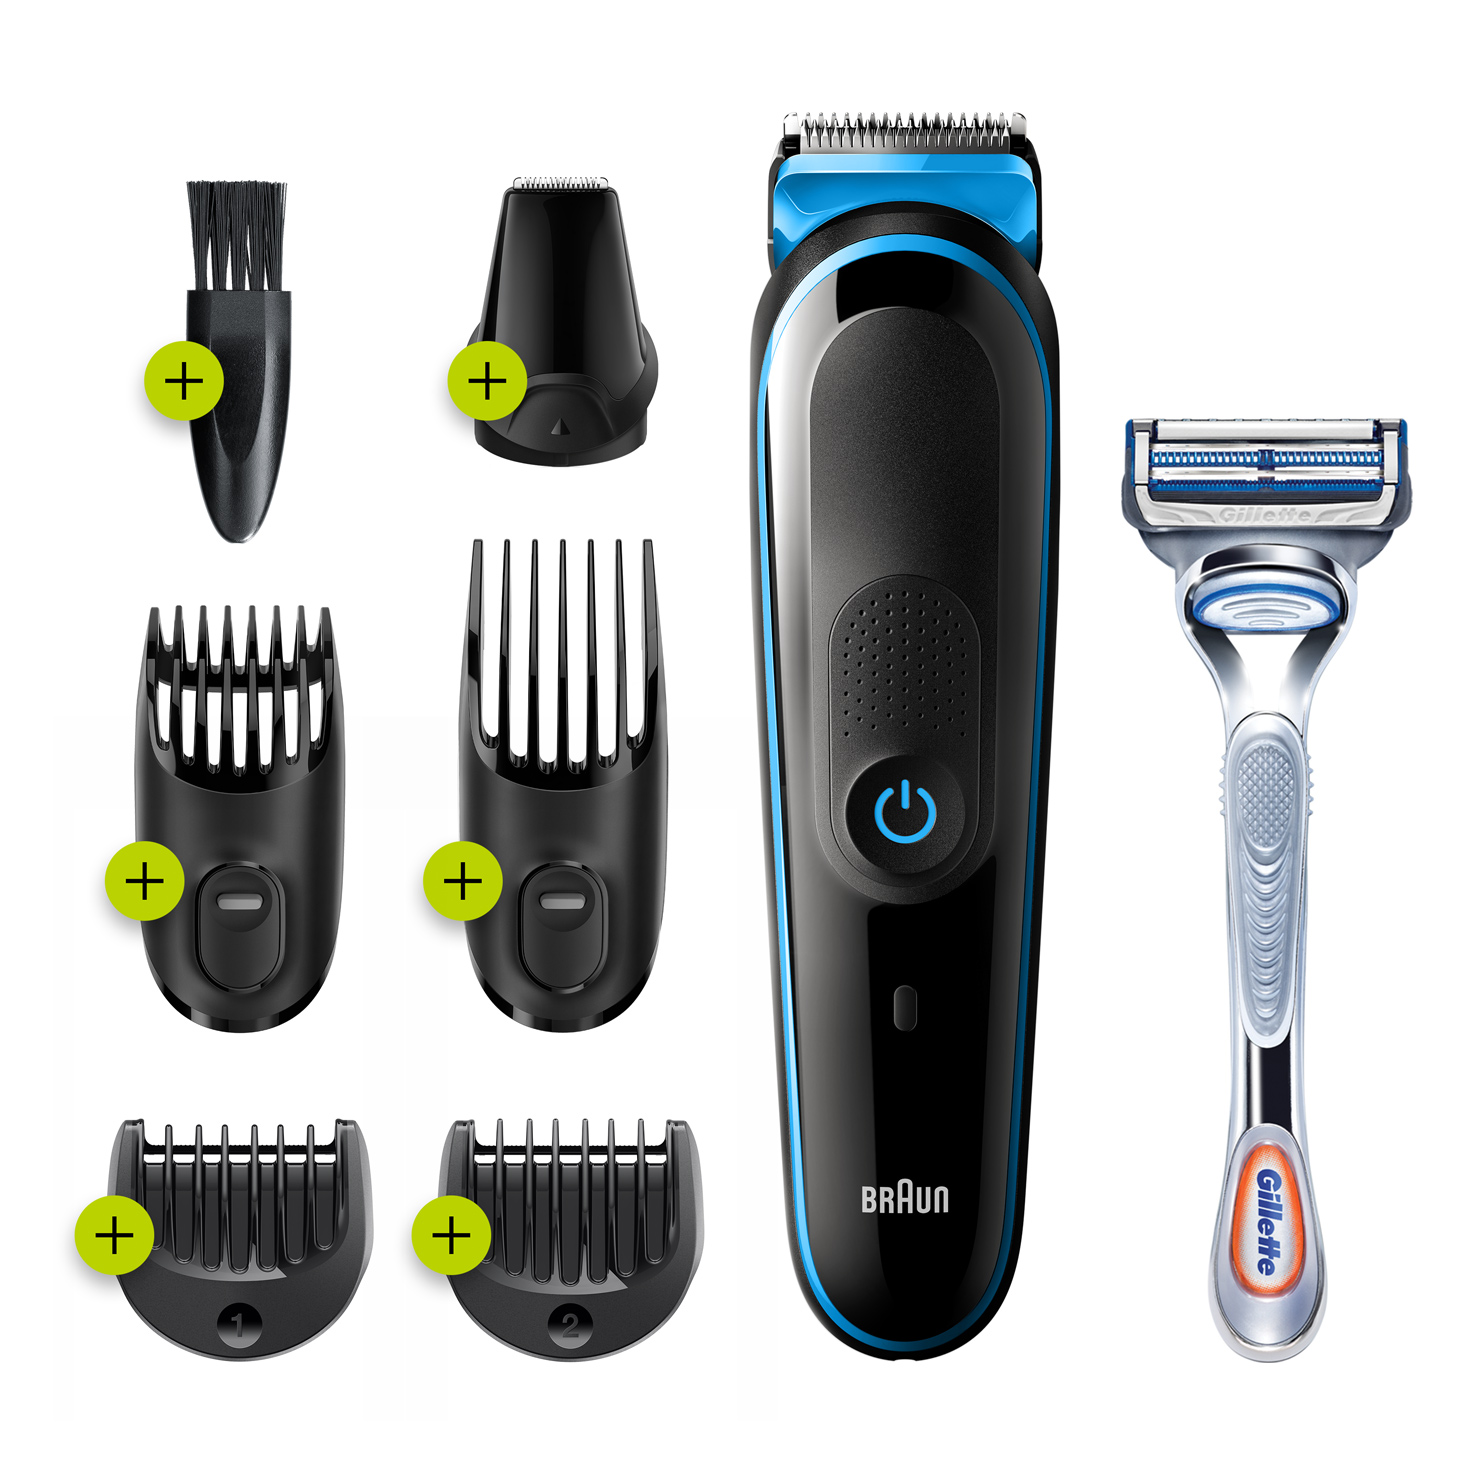 Braun All in one trimmer 3 MGK3242